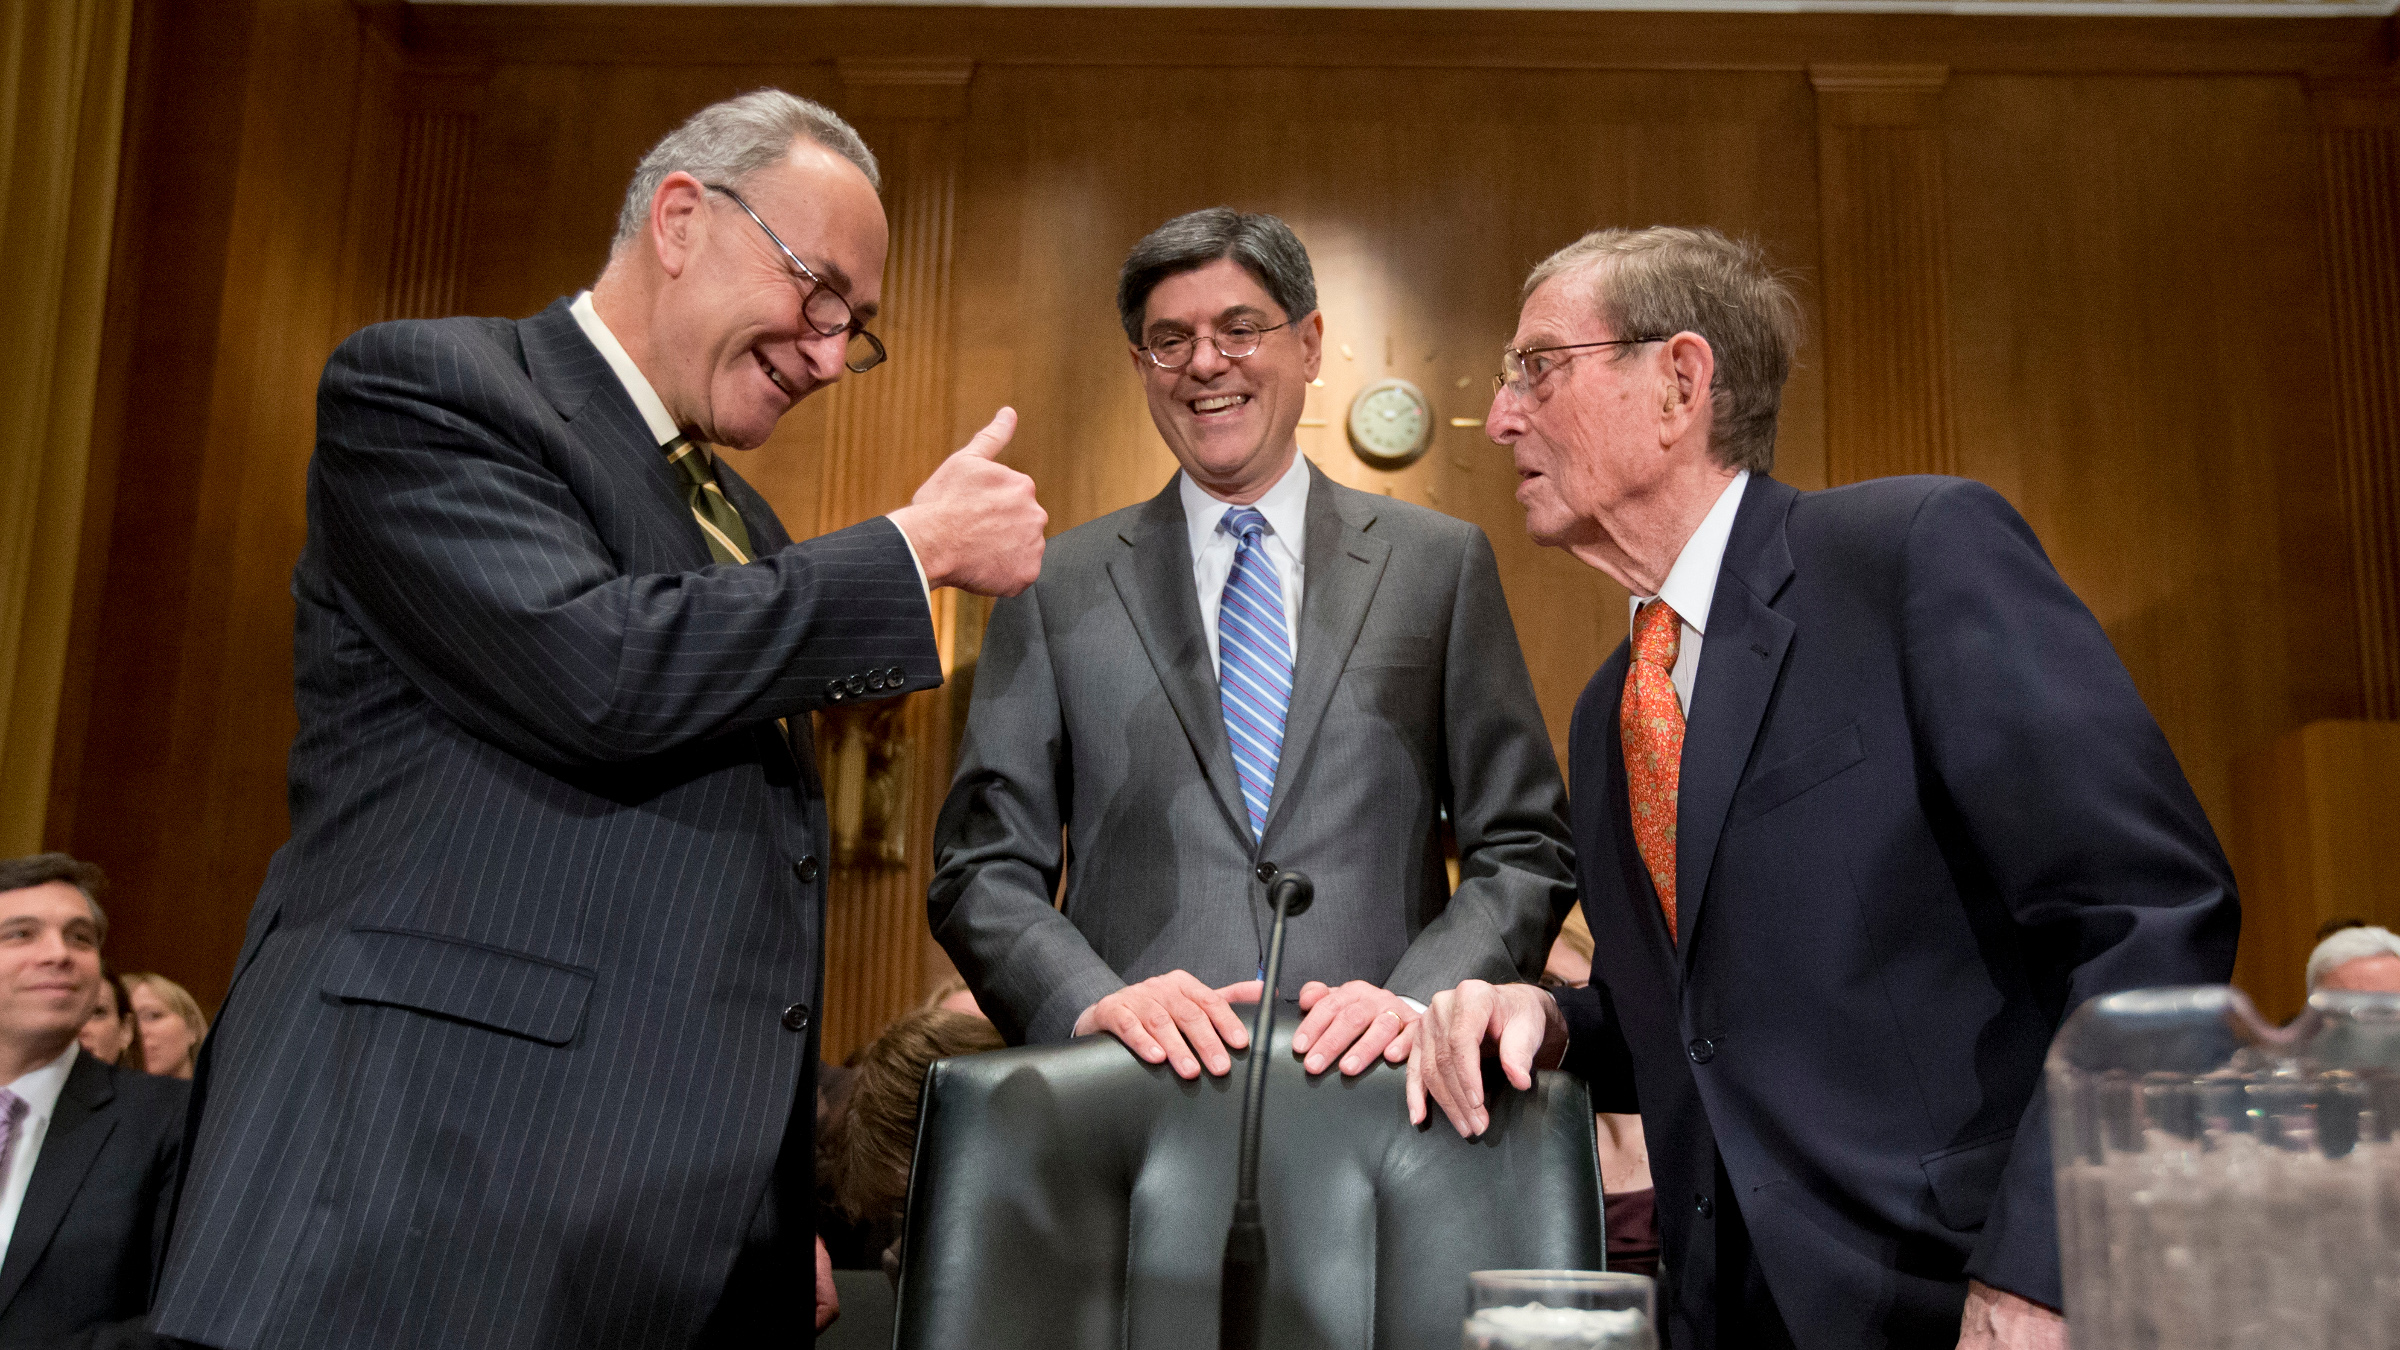 Jack Lew President Barack Obama's choice to be treasury secretary, center, talks with Sen. Charles Schumer, D-N.Y., left, and former New Mexico Sen. Pete Domenici, on Capitol Hill in Washington.